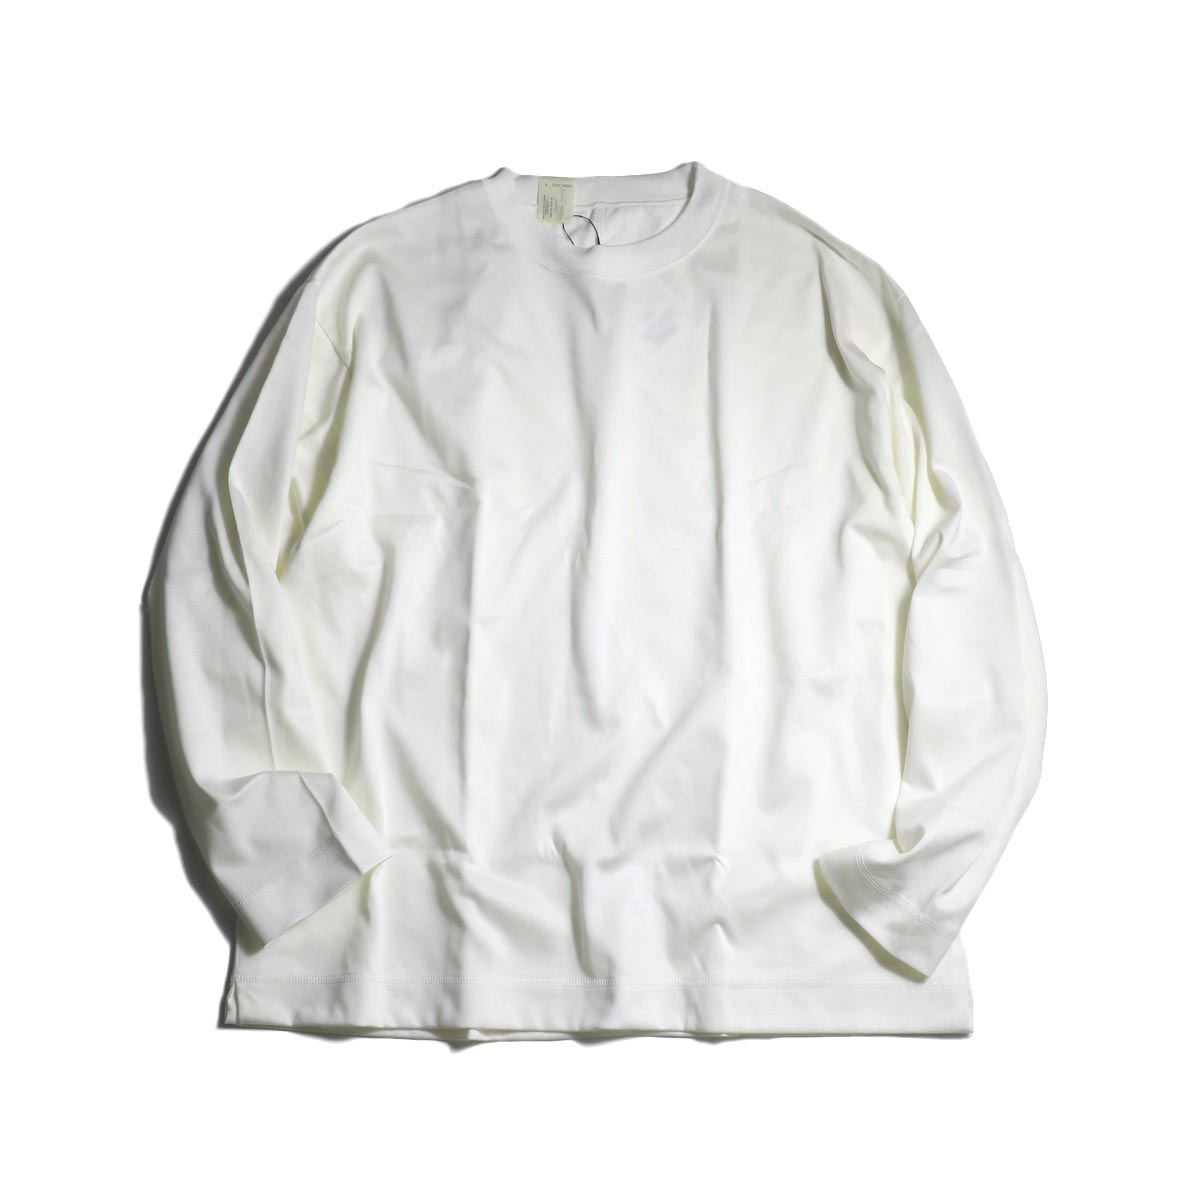 N.HOOLYWOOD / 20RCH-004 Crew Neck Long Sleeve (White)